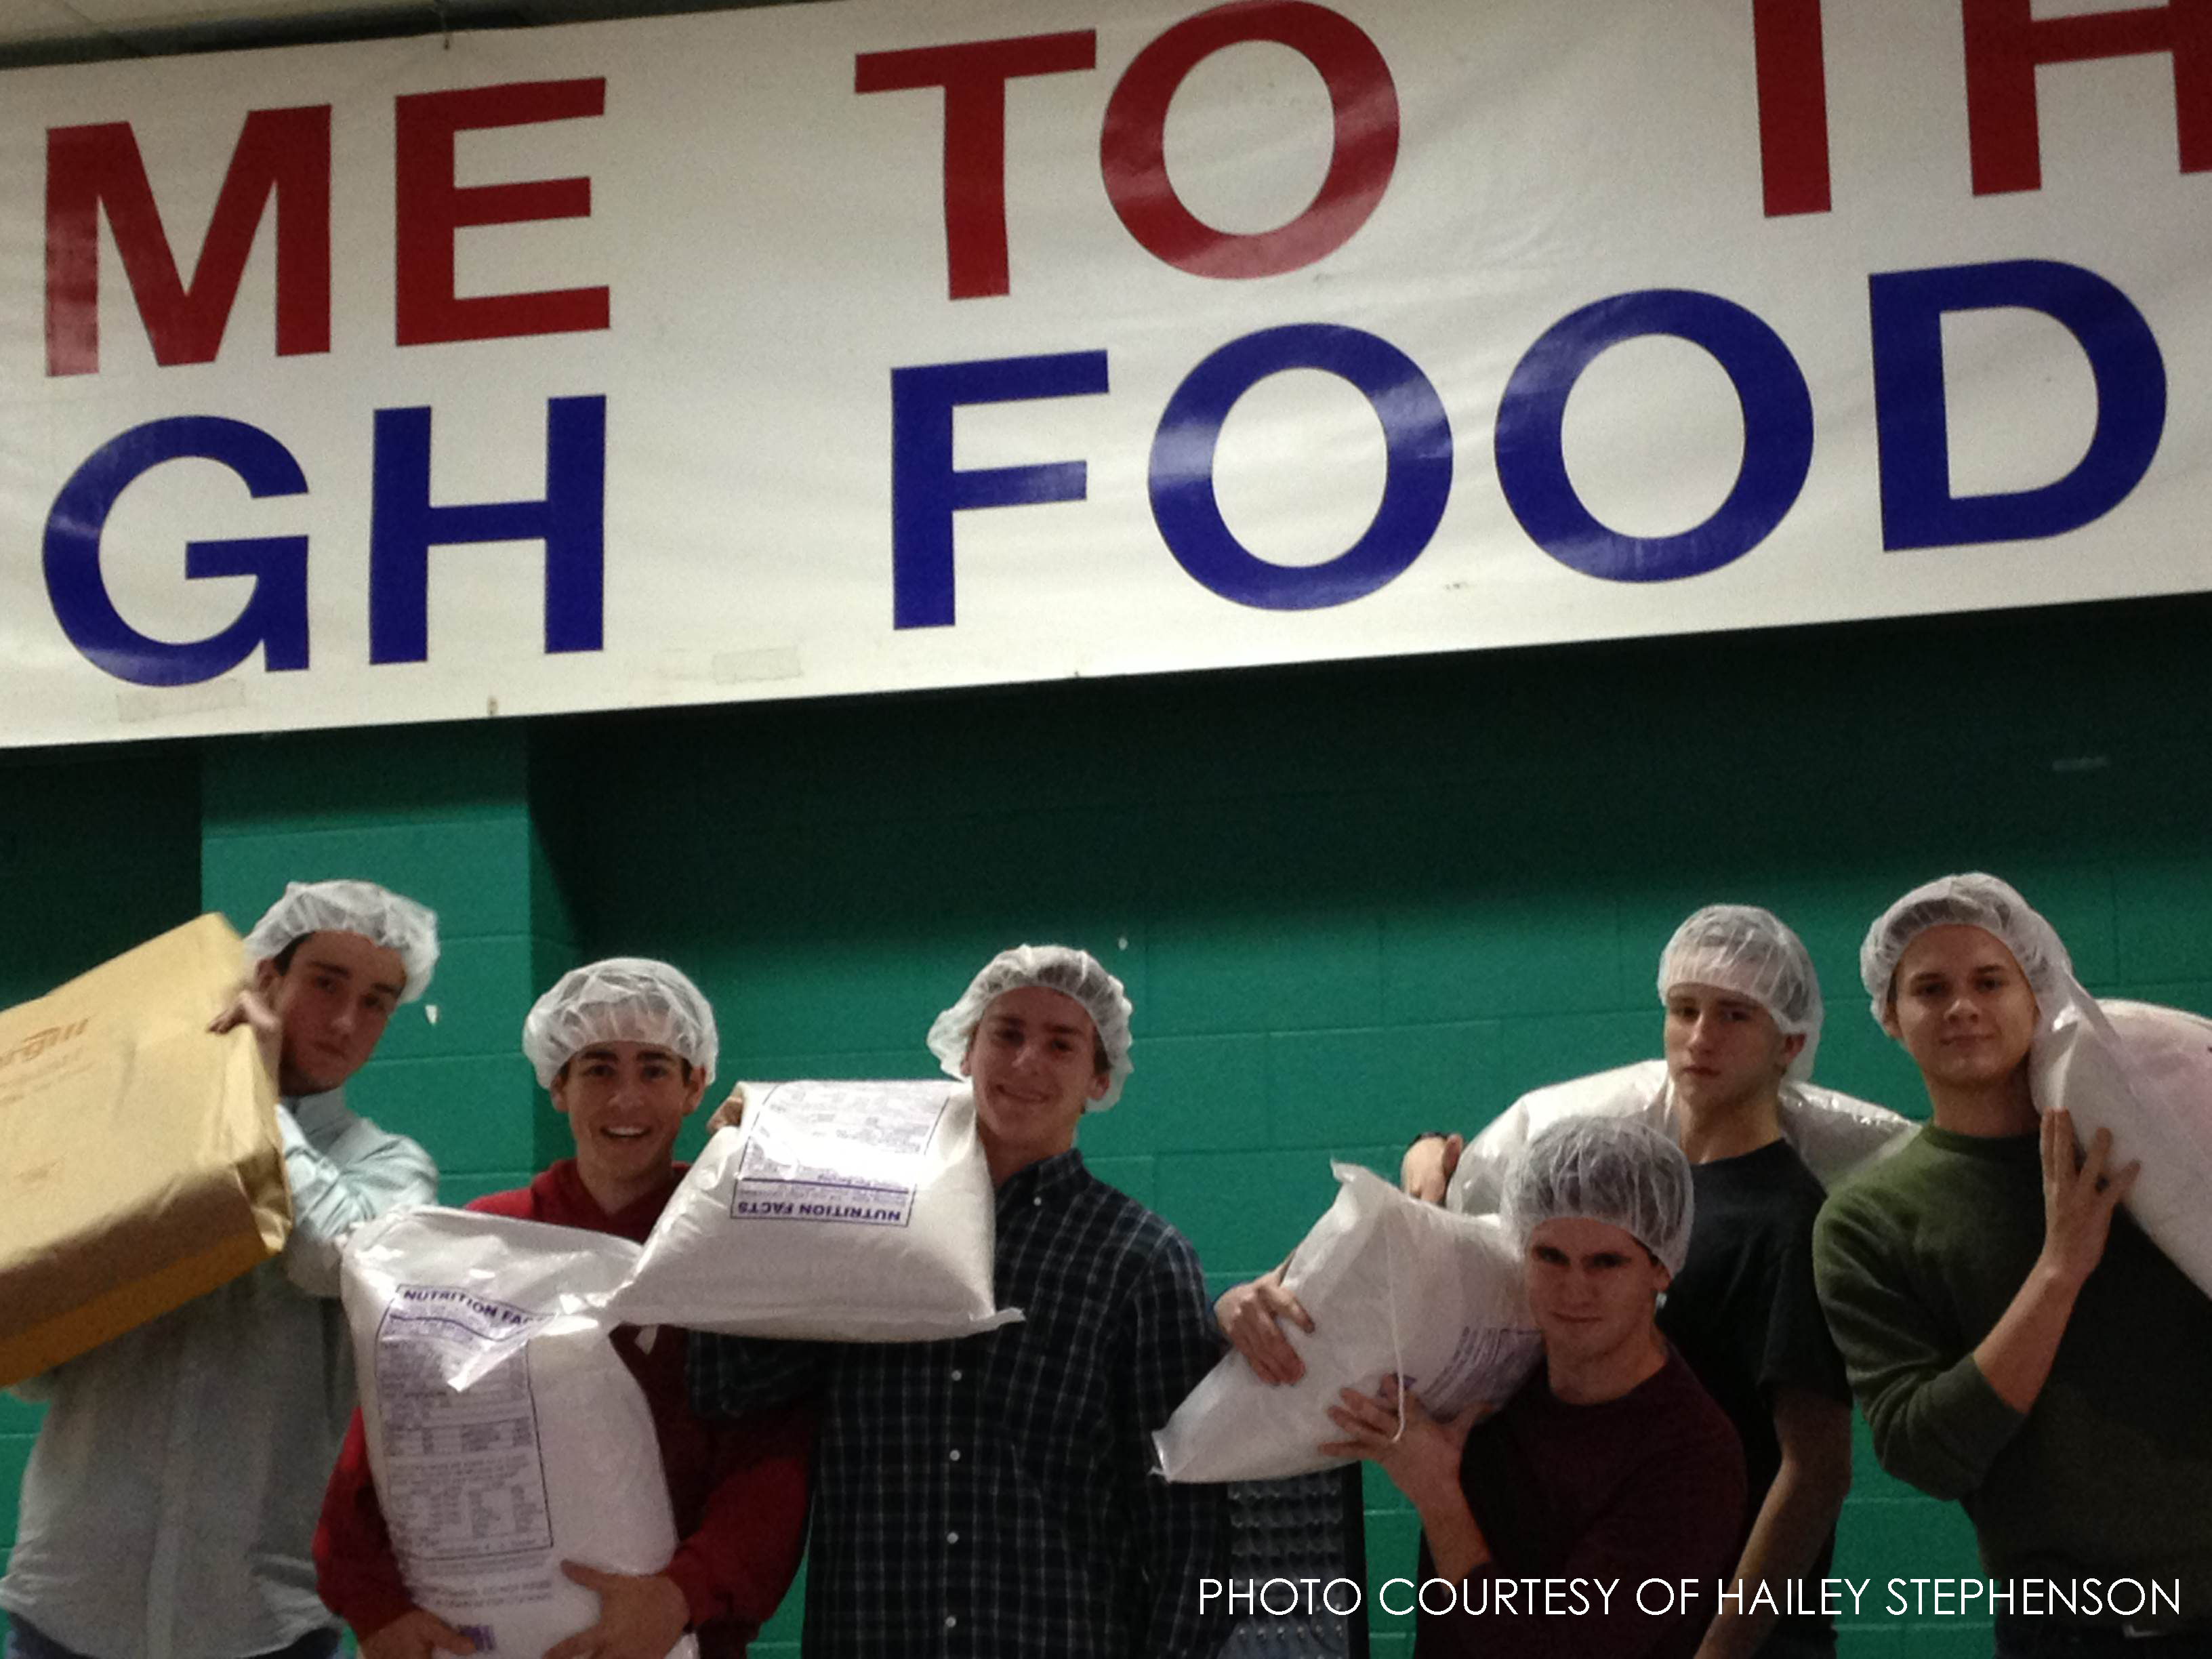 Several guys pose holding large bags filled with the ingredients needed to package meals. 20,000 meals for needy families worldwide were assembled that day.